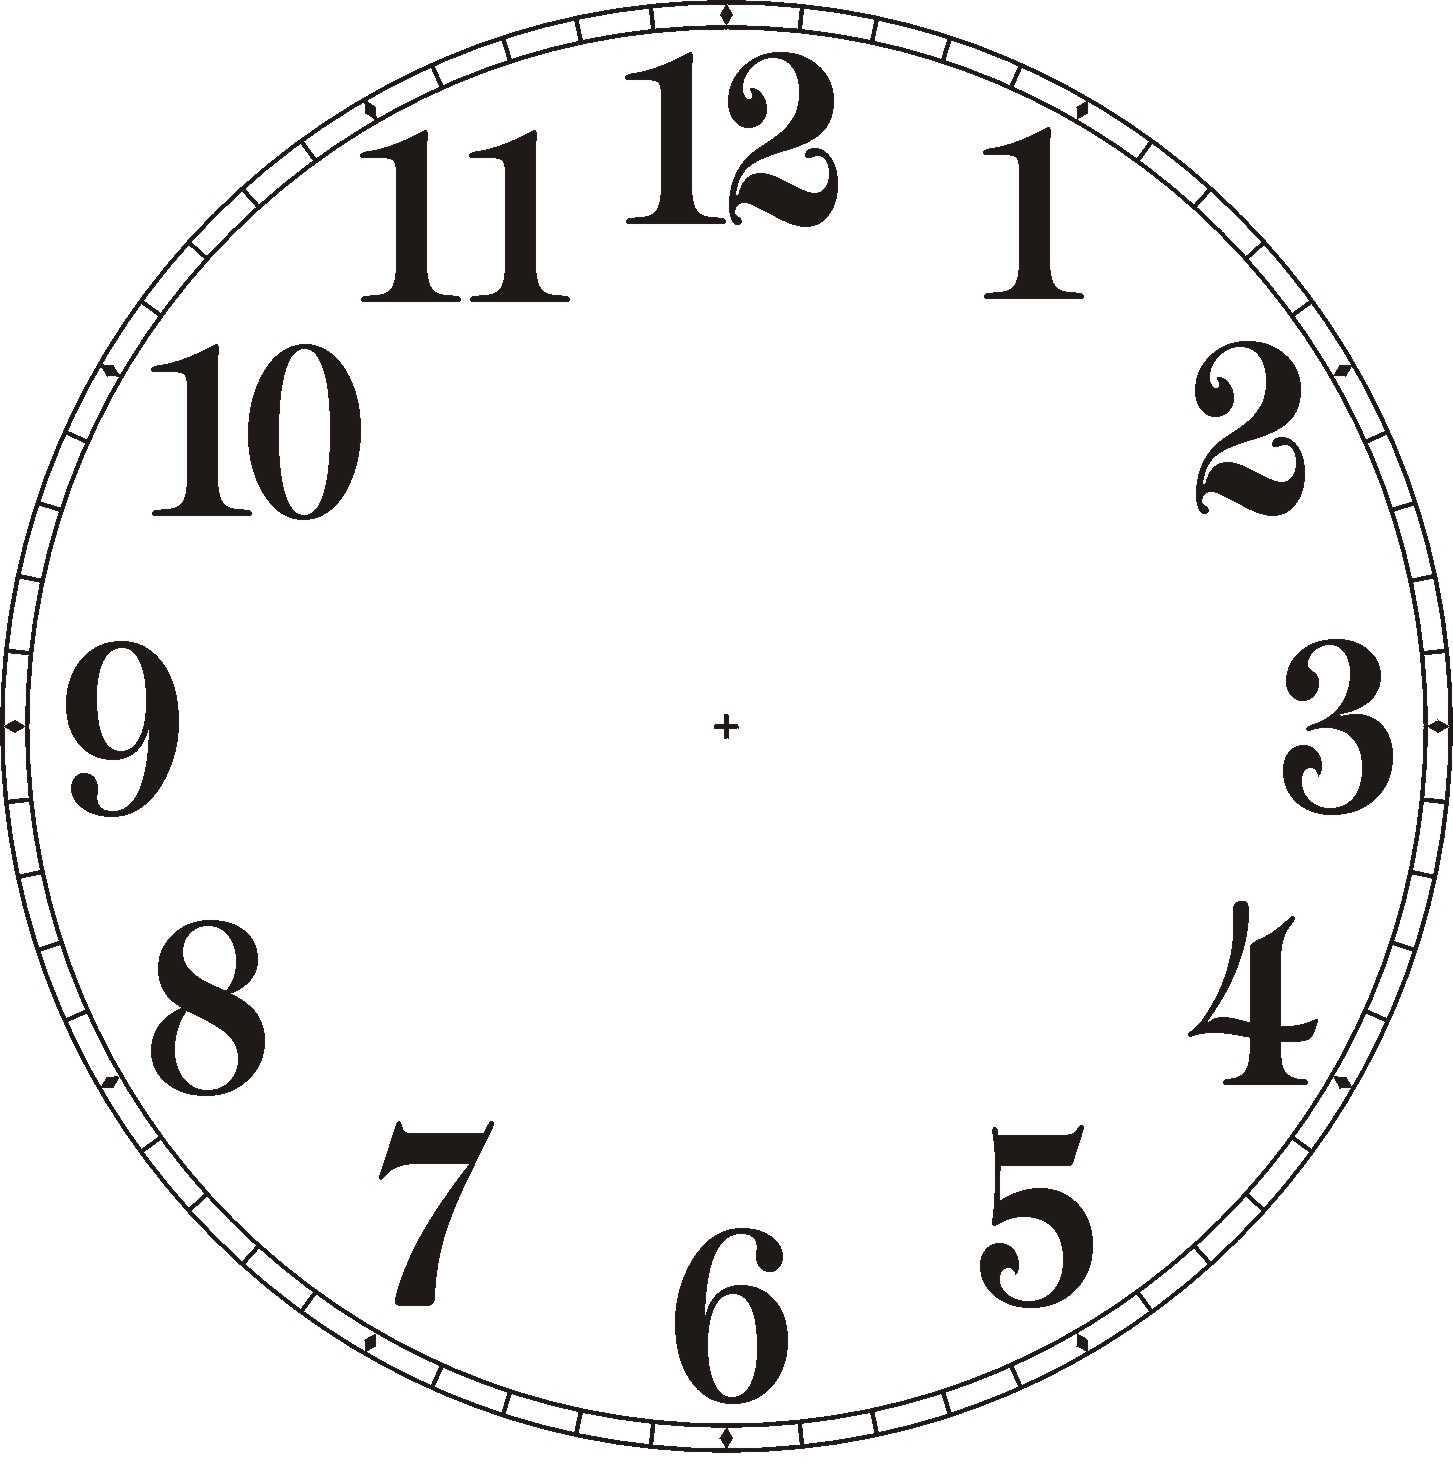 Free clock images download. Clocks clipart face